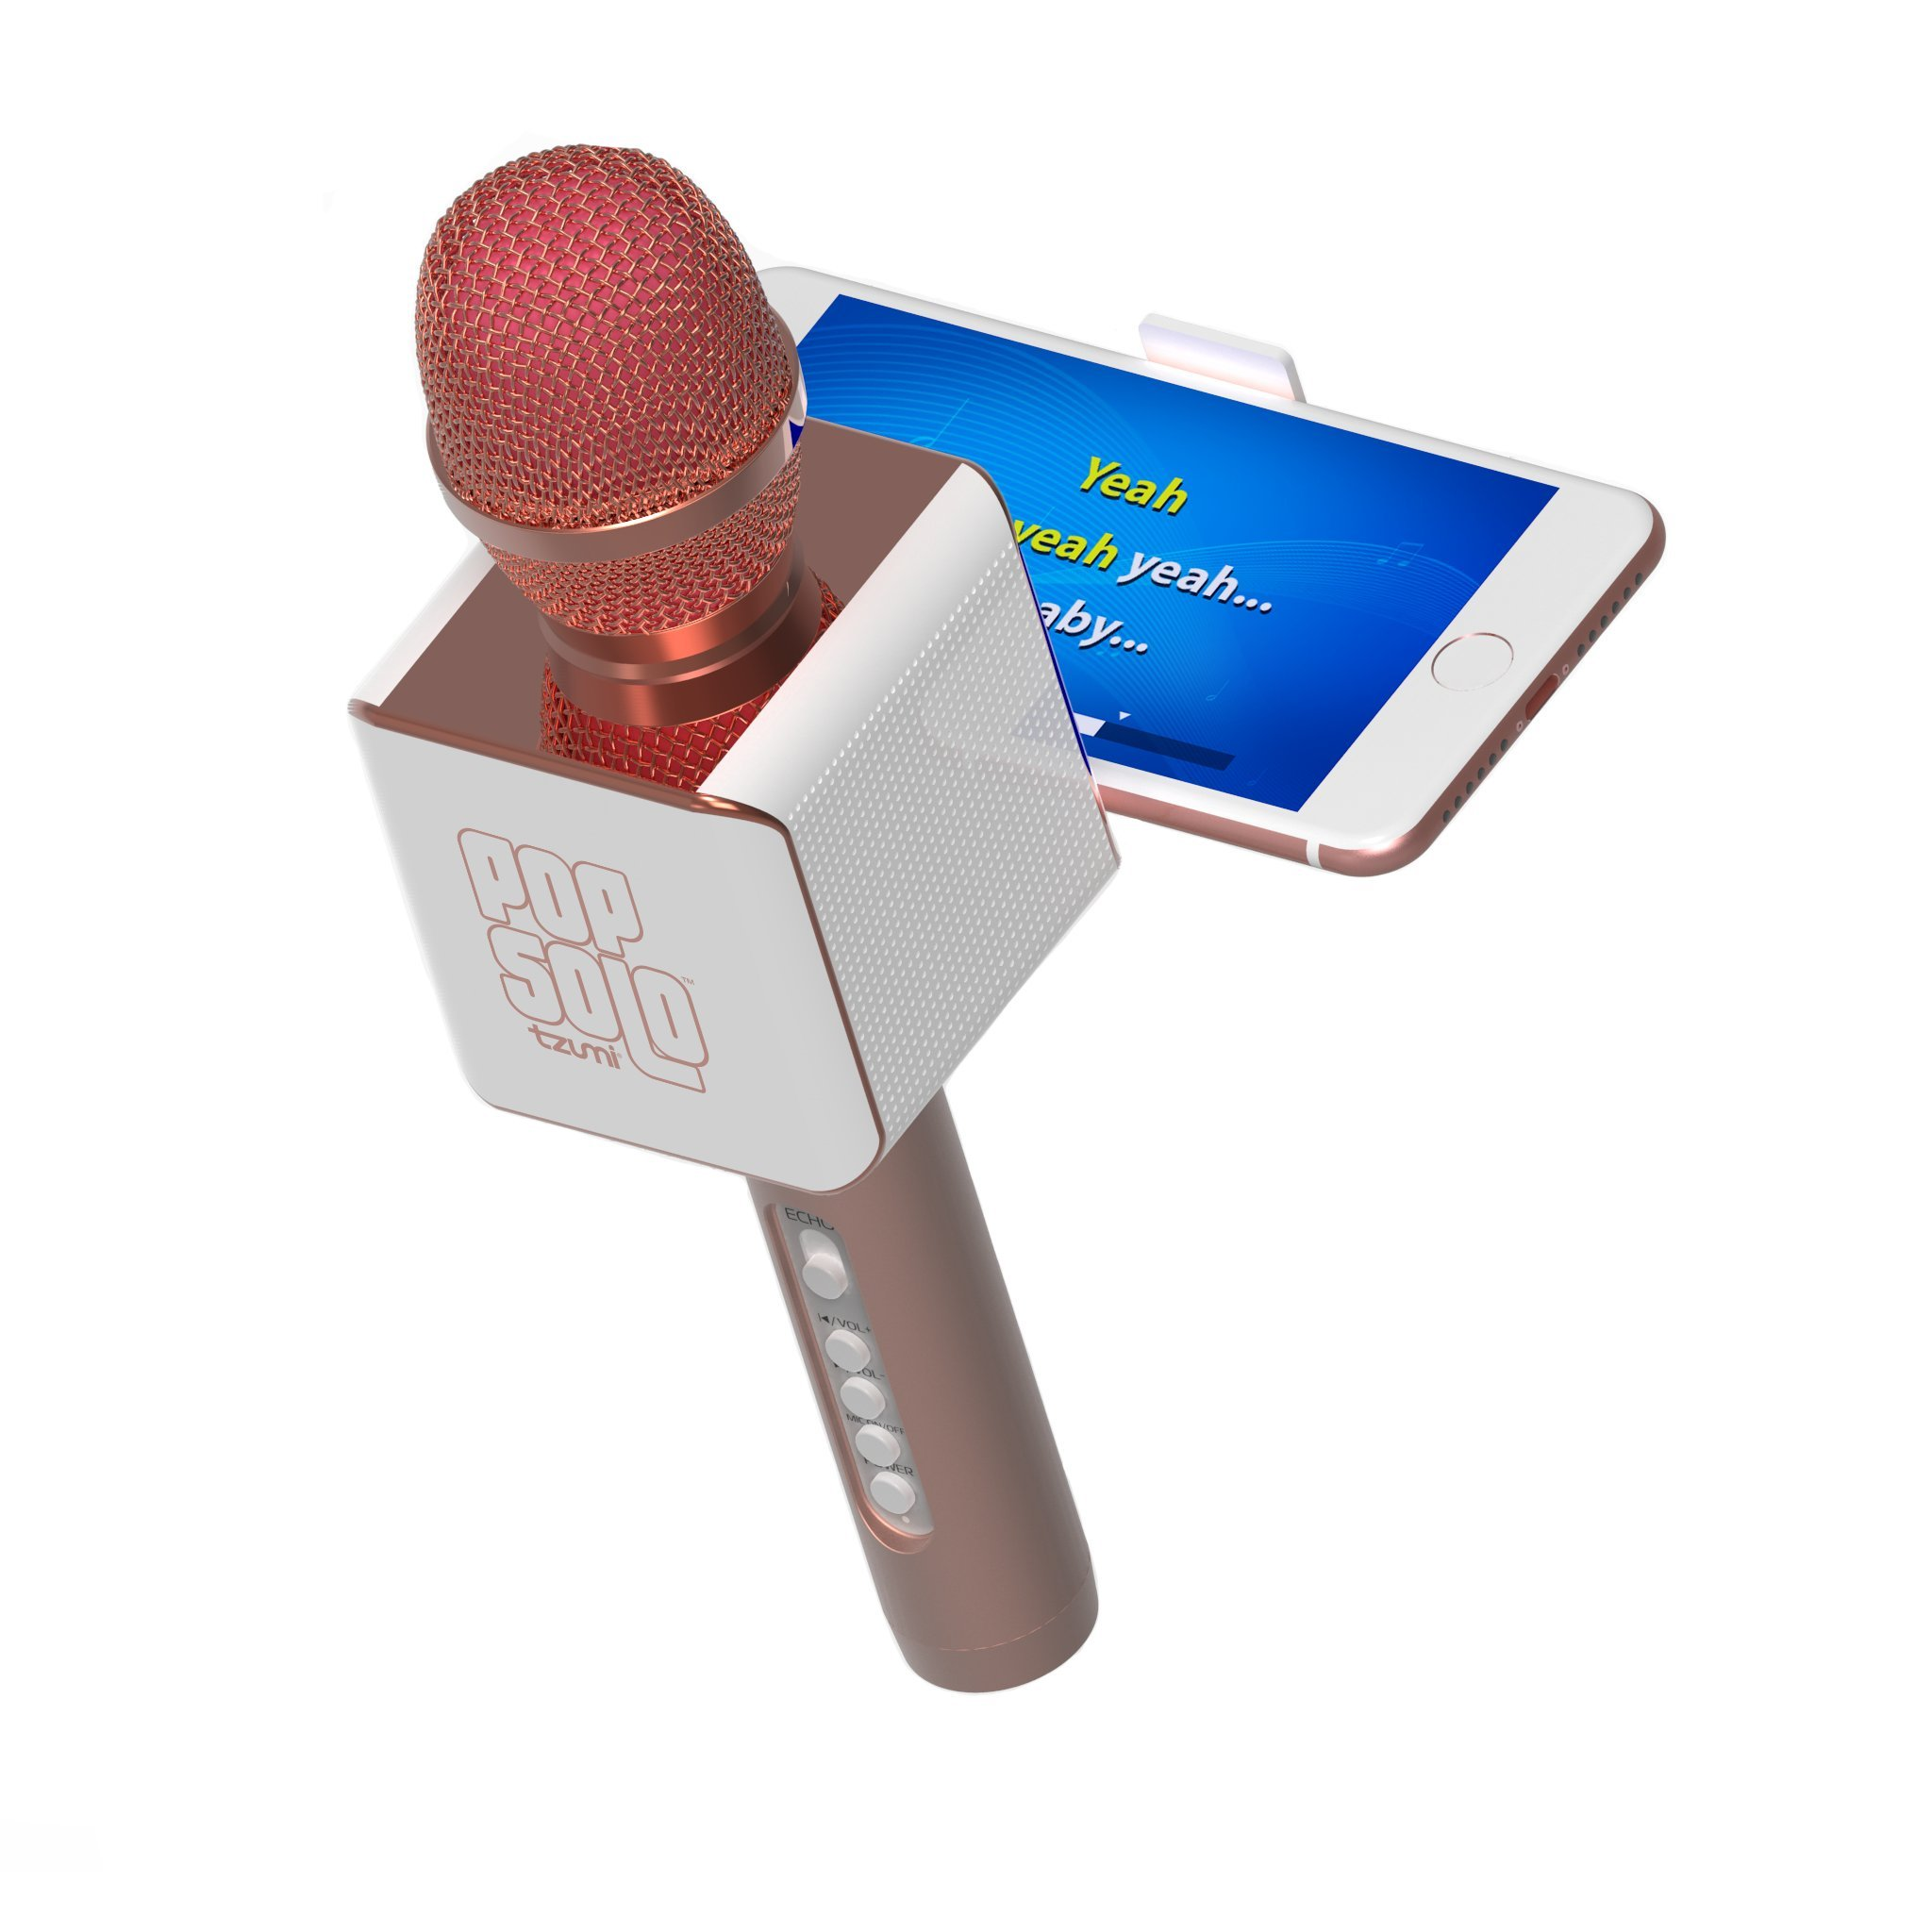 PopSolo by tzumi – Professional Bluetooth Karaoke Microphone and Voice Mixer with Smartphone Holder – Great for Kids and Parties – Rose Gold